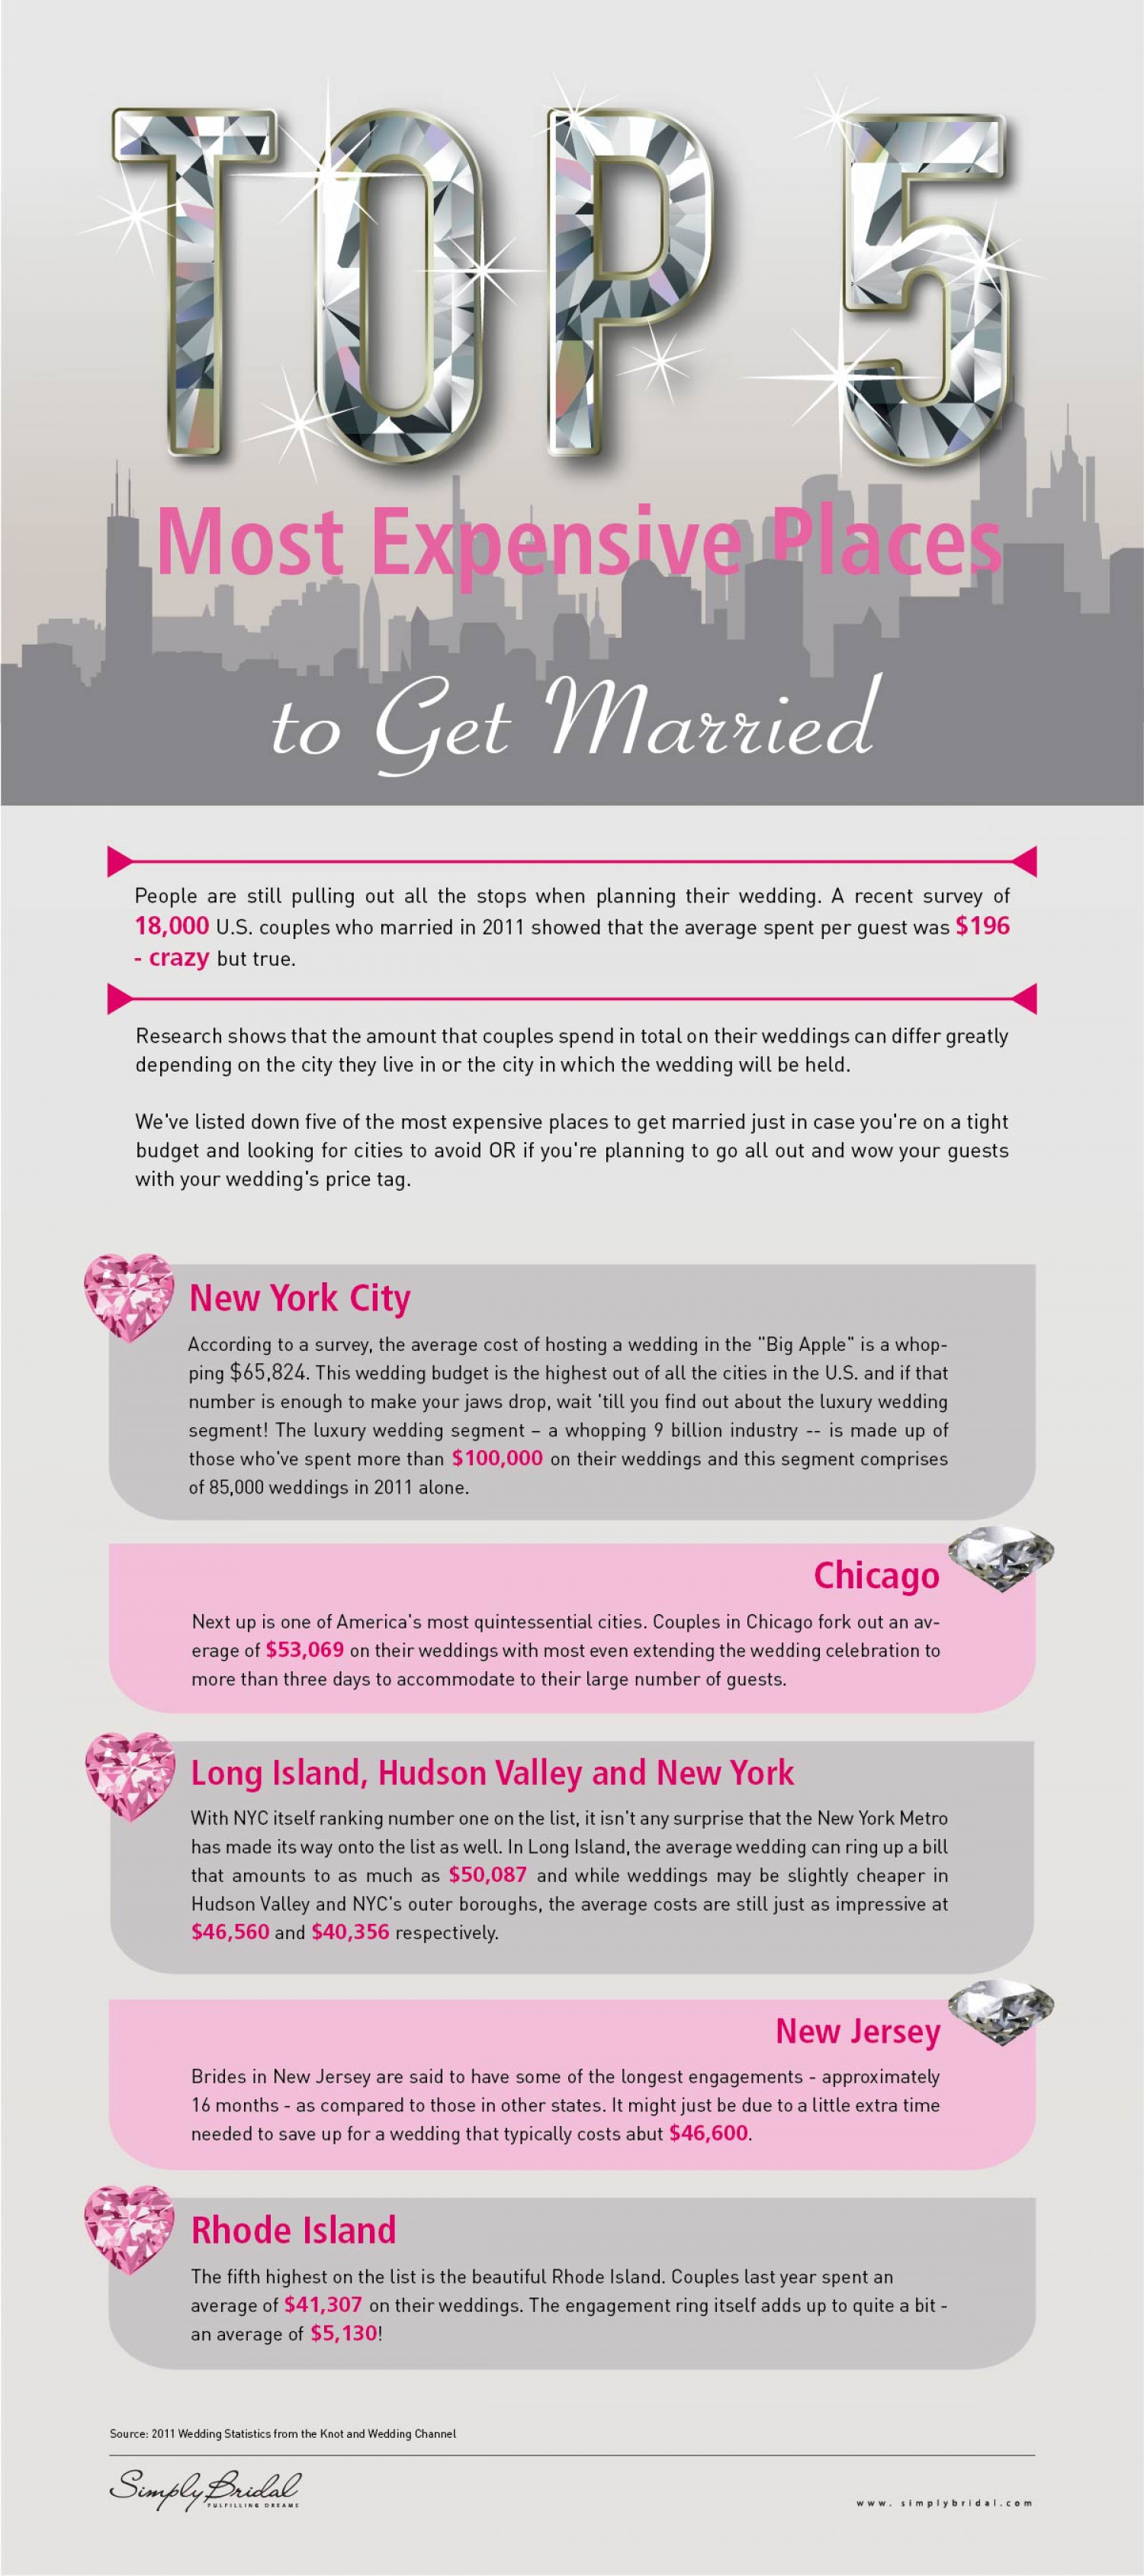 Top 5 Most Expensive Places to Get Married In Infographic